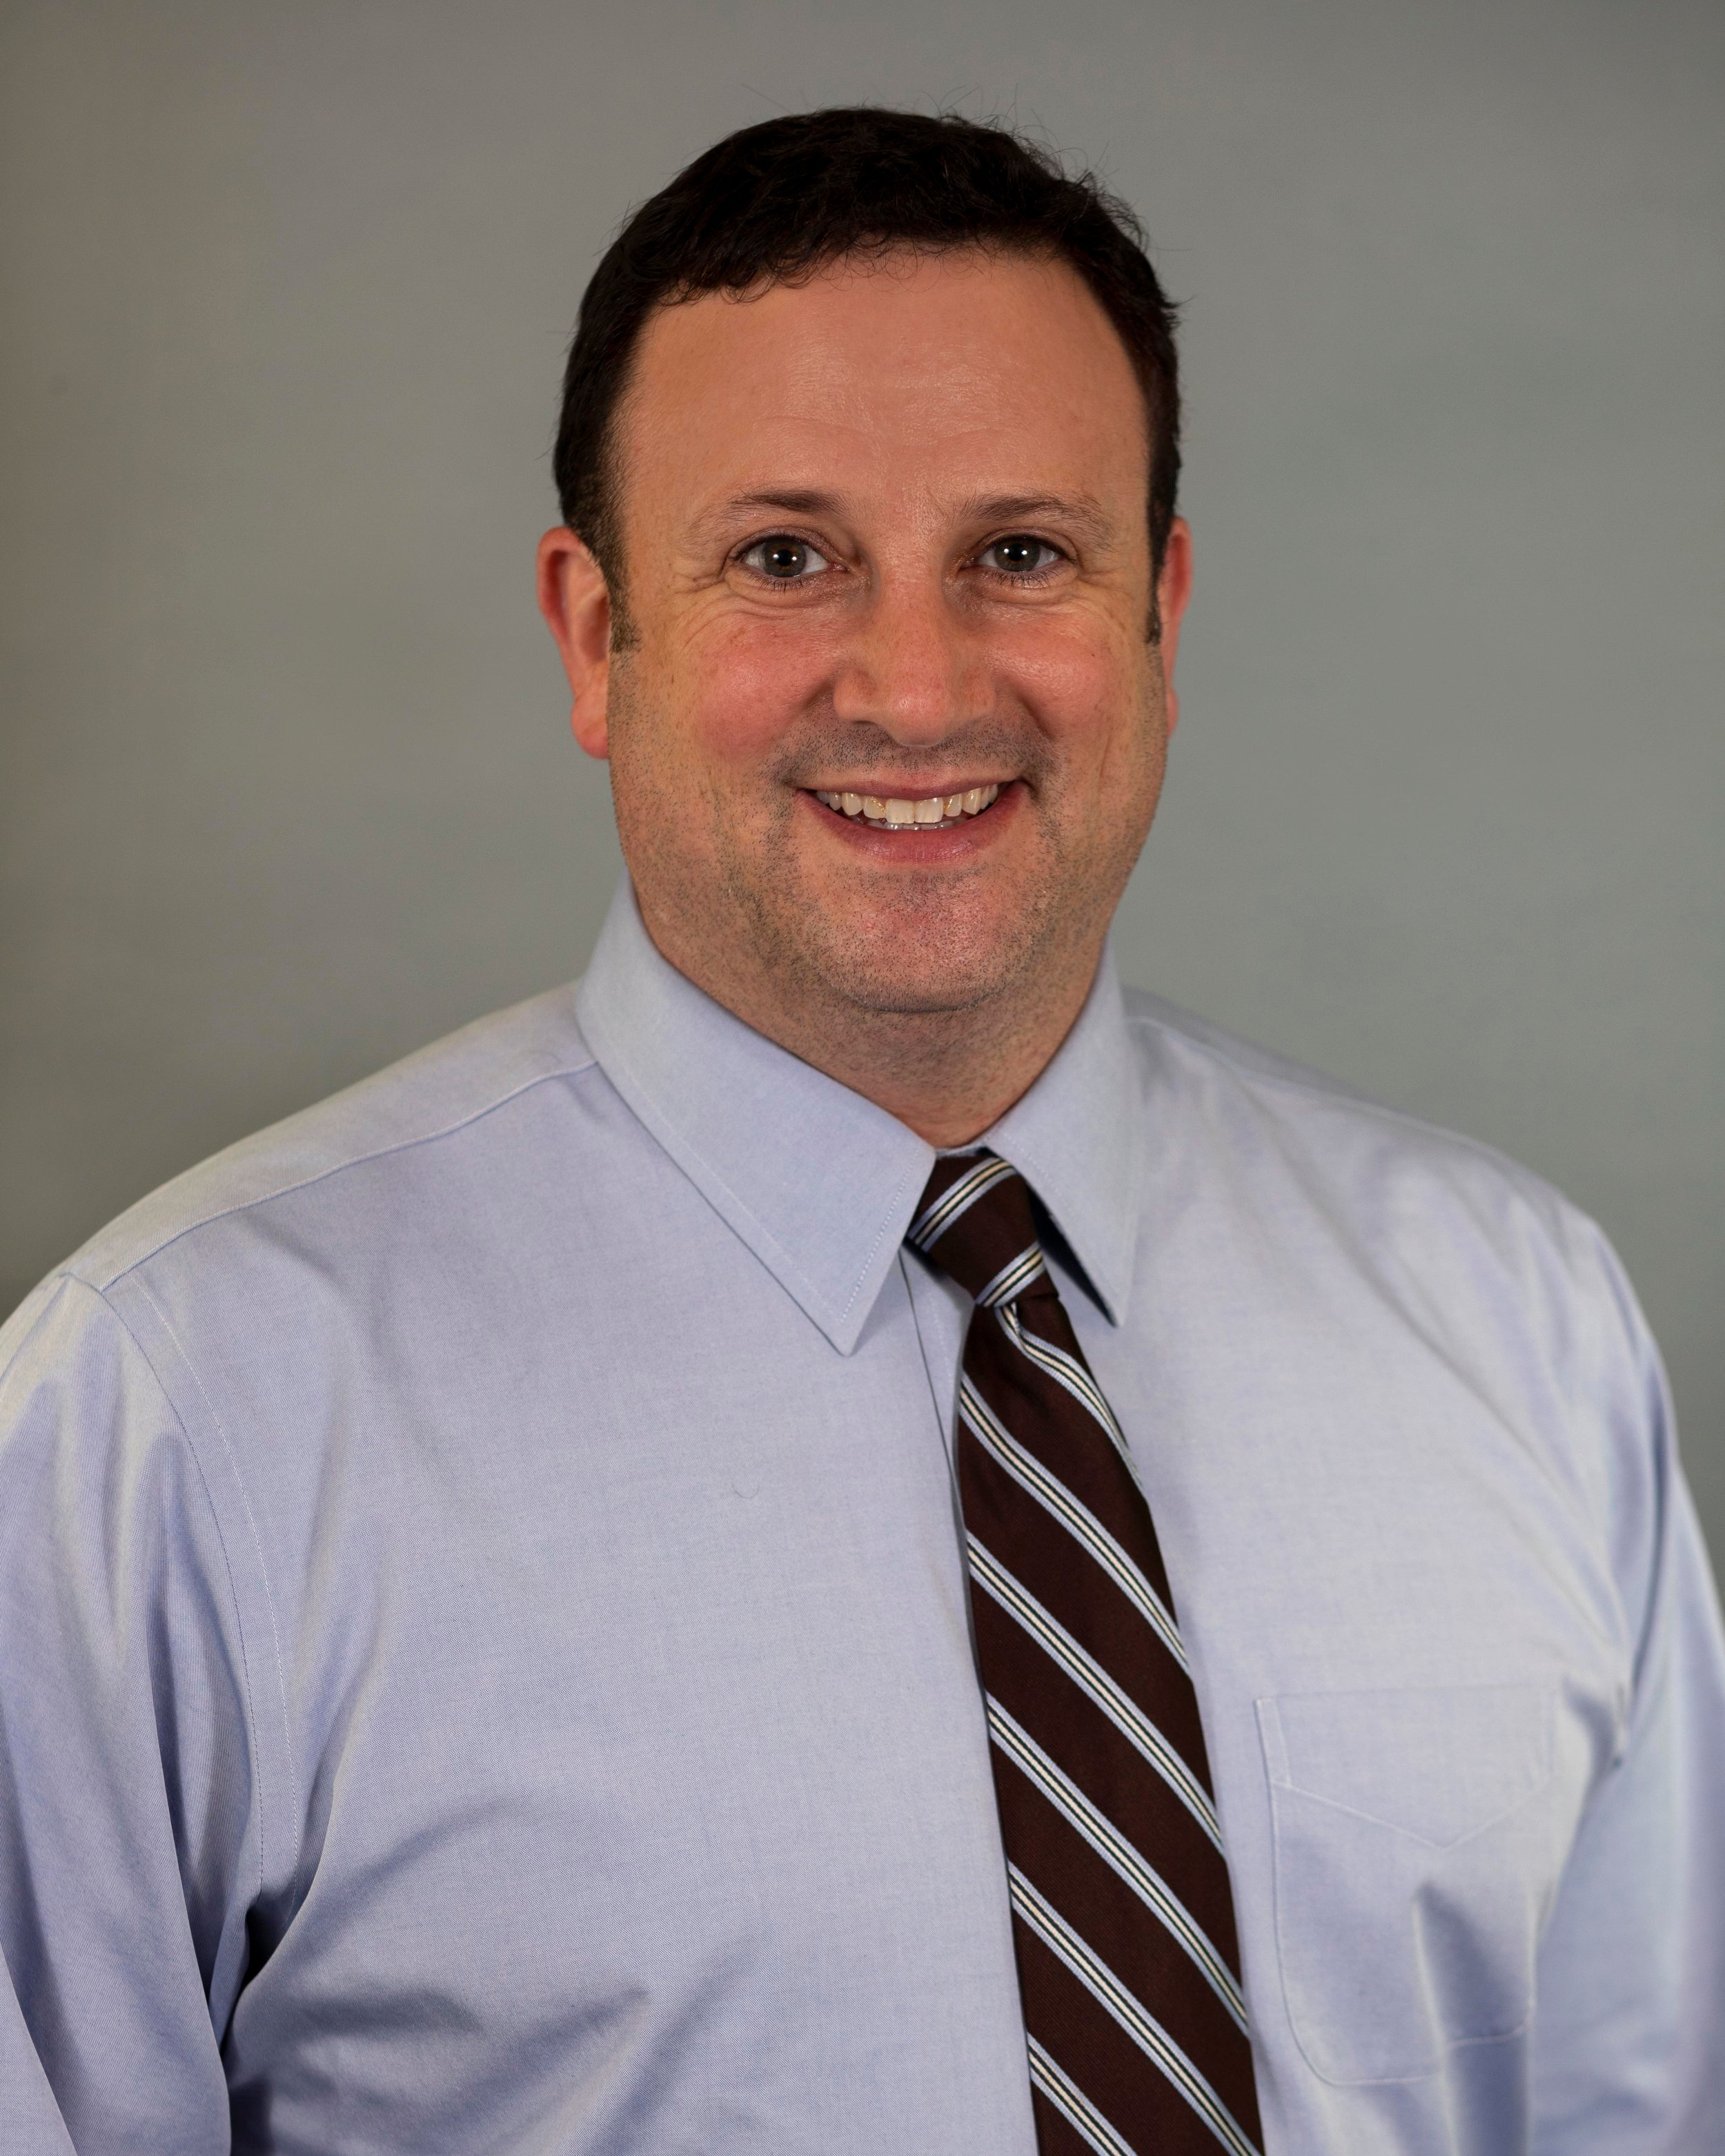 jason marsh - Jason has served on the Town Council since 2015 and is currently Council Majority Leader and chair of the Aquatics Facilities Committee. Jason hopes to explore new and innovative ways to make more town services available online. He also looks forward to presenting the voters of Trumbull a proposal for a facility that will provide athletic and recreational opportunities for the entire community.